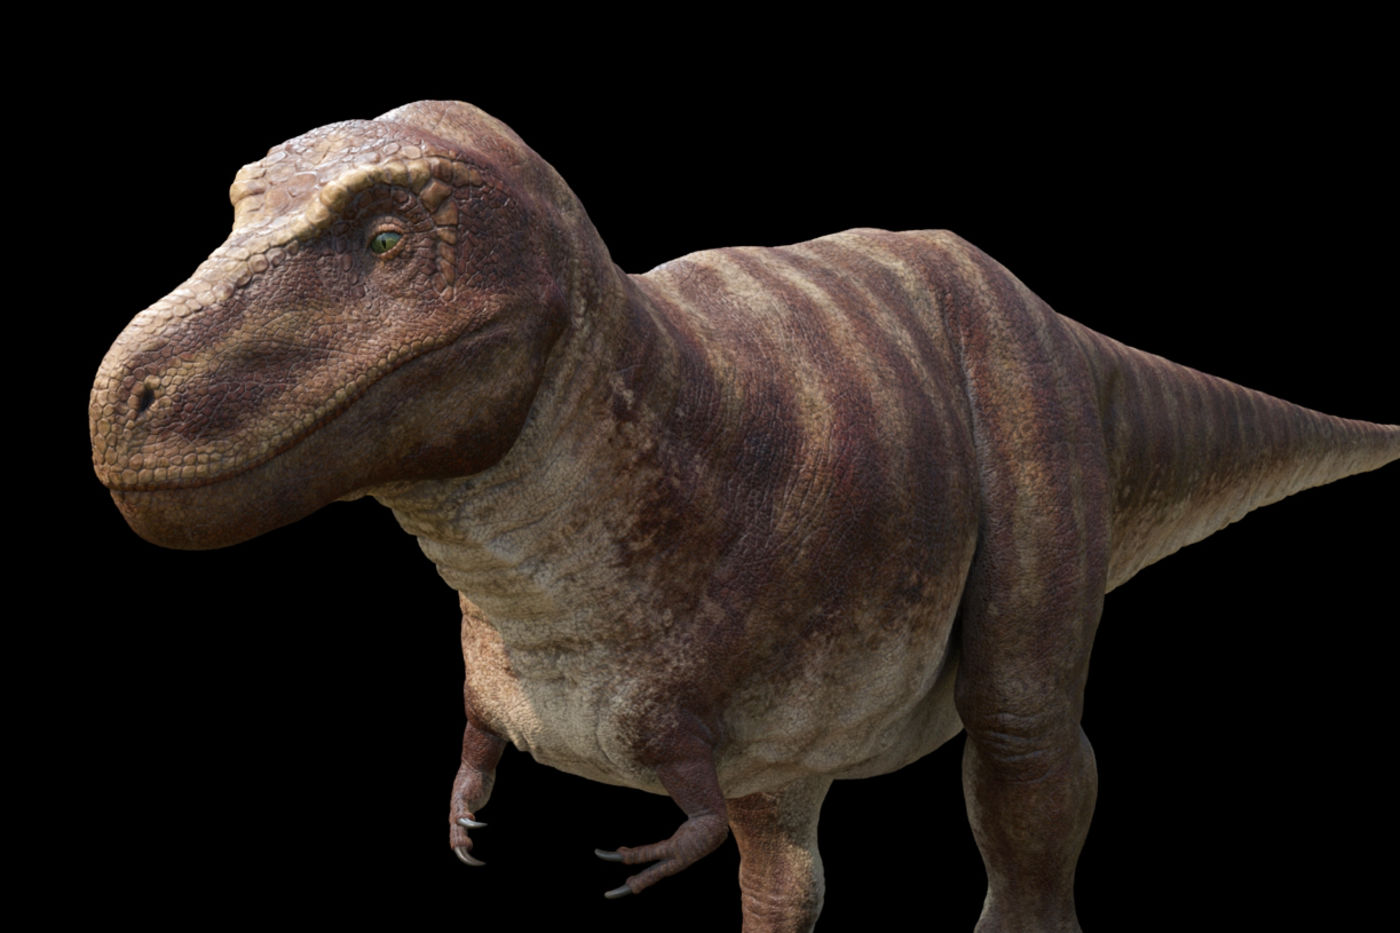 A 3D animation of a living Tyrannosaurus rex, standing in a forested landscape. The dinosaur appears to be walking slowing toward you, with mouth slightly open and bright green eyes fixed straight ahead.